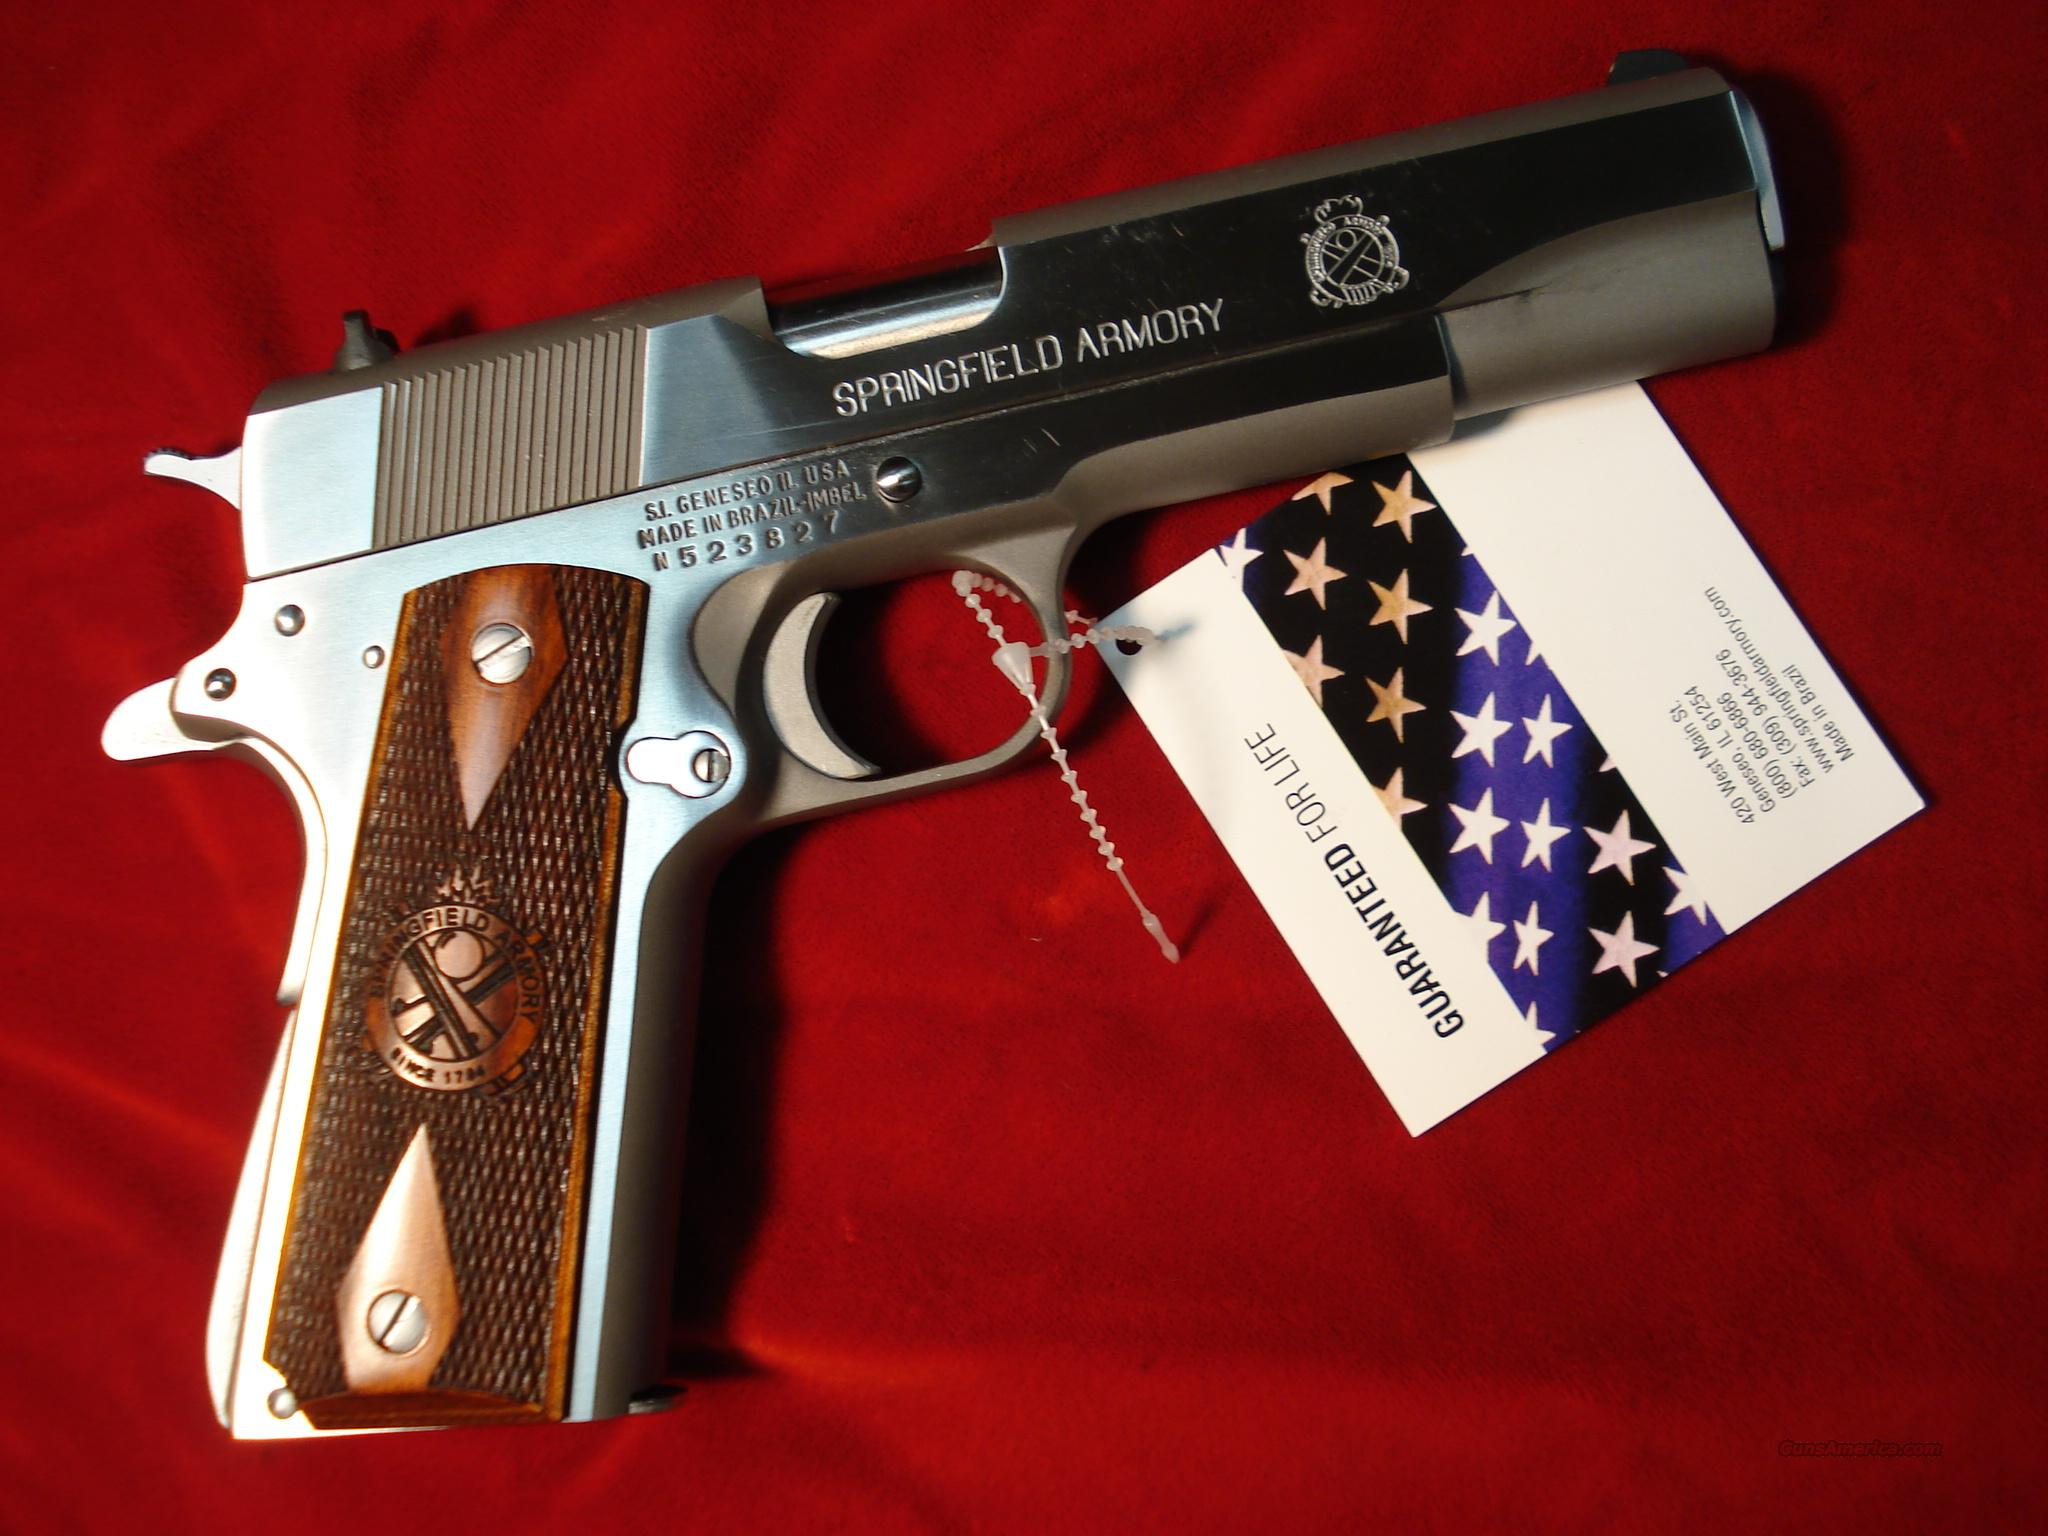 SPRINGFIELD ARMORY STAINLESS 1911A1  (PB9151LP)  Guns > Pistols > Springfield Armory Pistols > 1911 Type